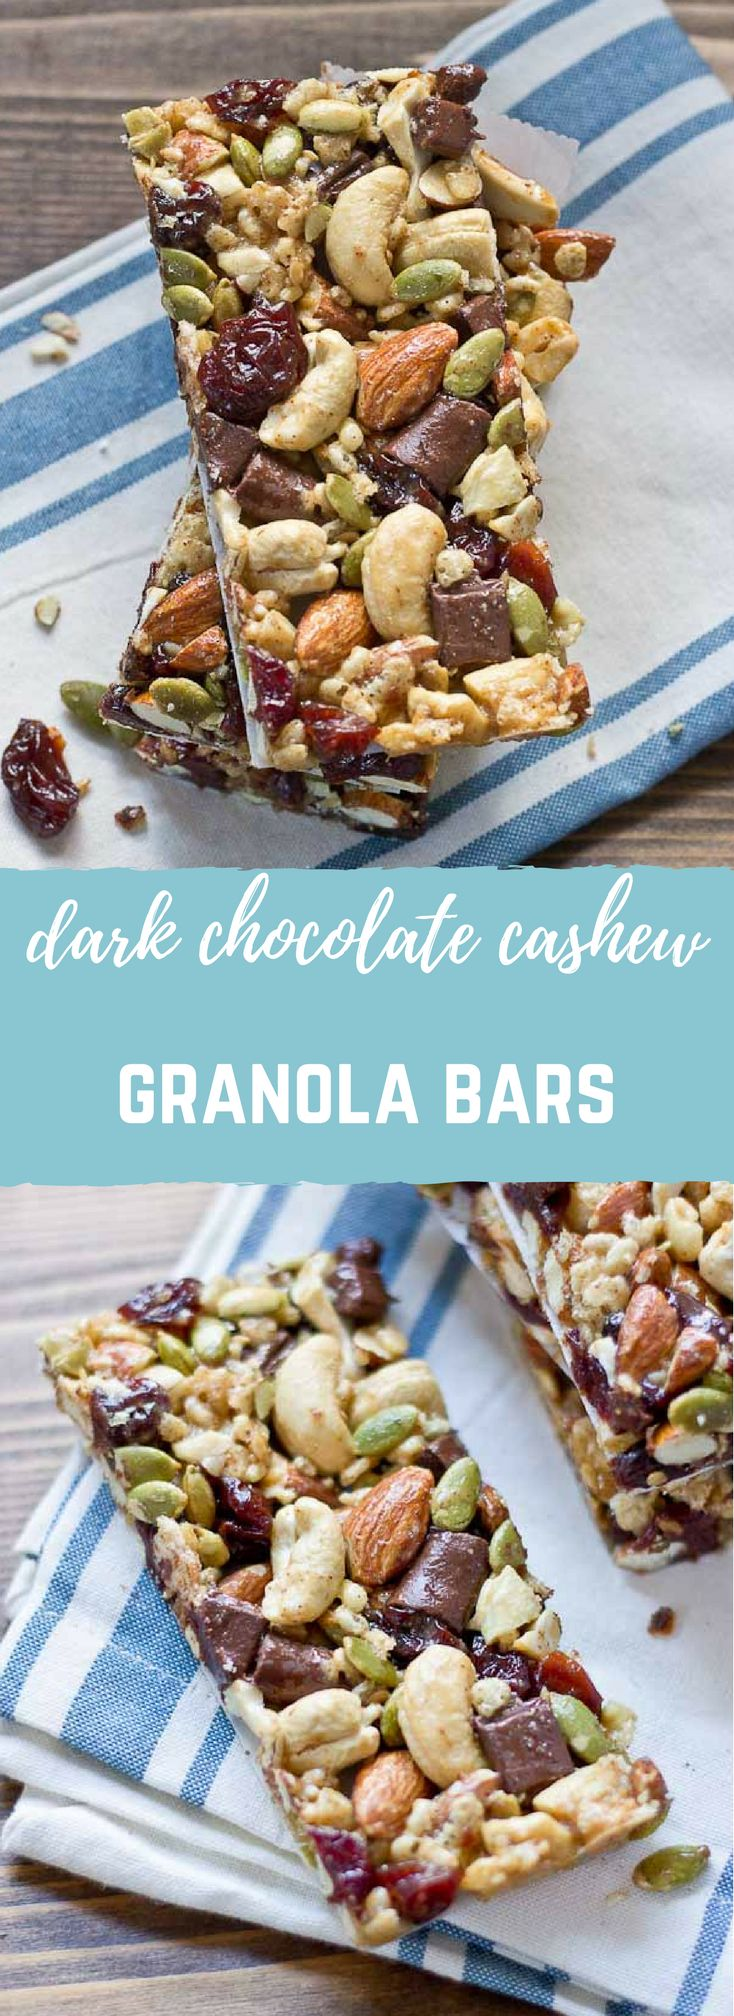 Tart Cherry, Dark Chocolate & Cashew Granola Bars. These snack bars are sweet, tart, salty, crunchy, healthy, yummy, and easy to make… what else can you ask for in a snack!? Gluten free and vegan.